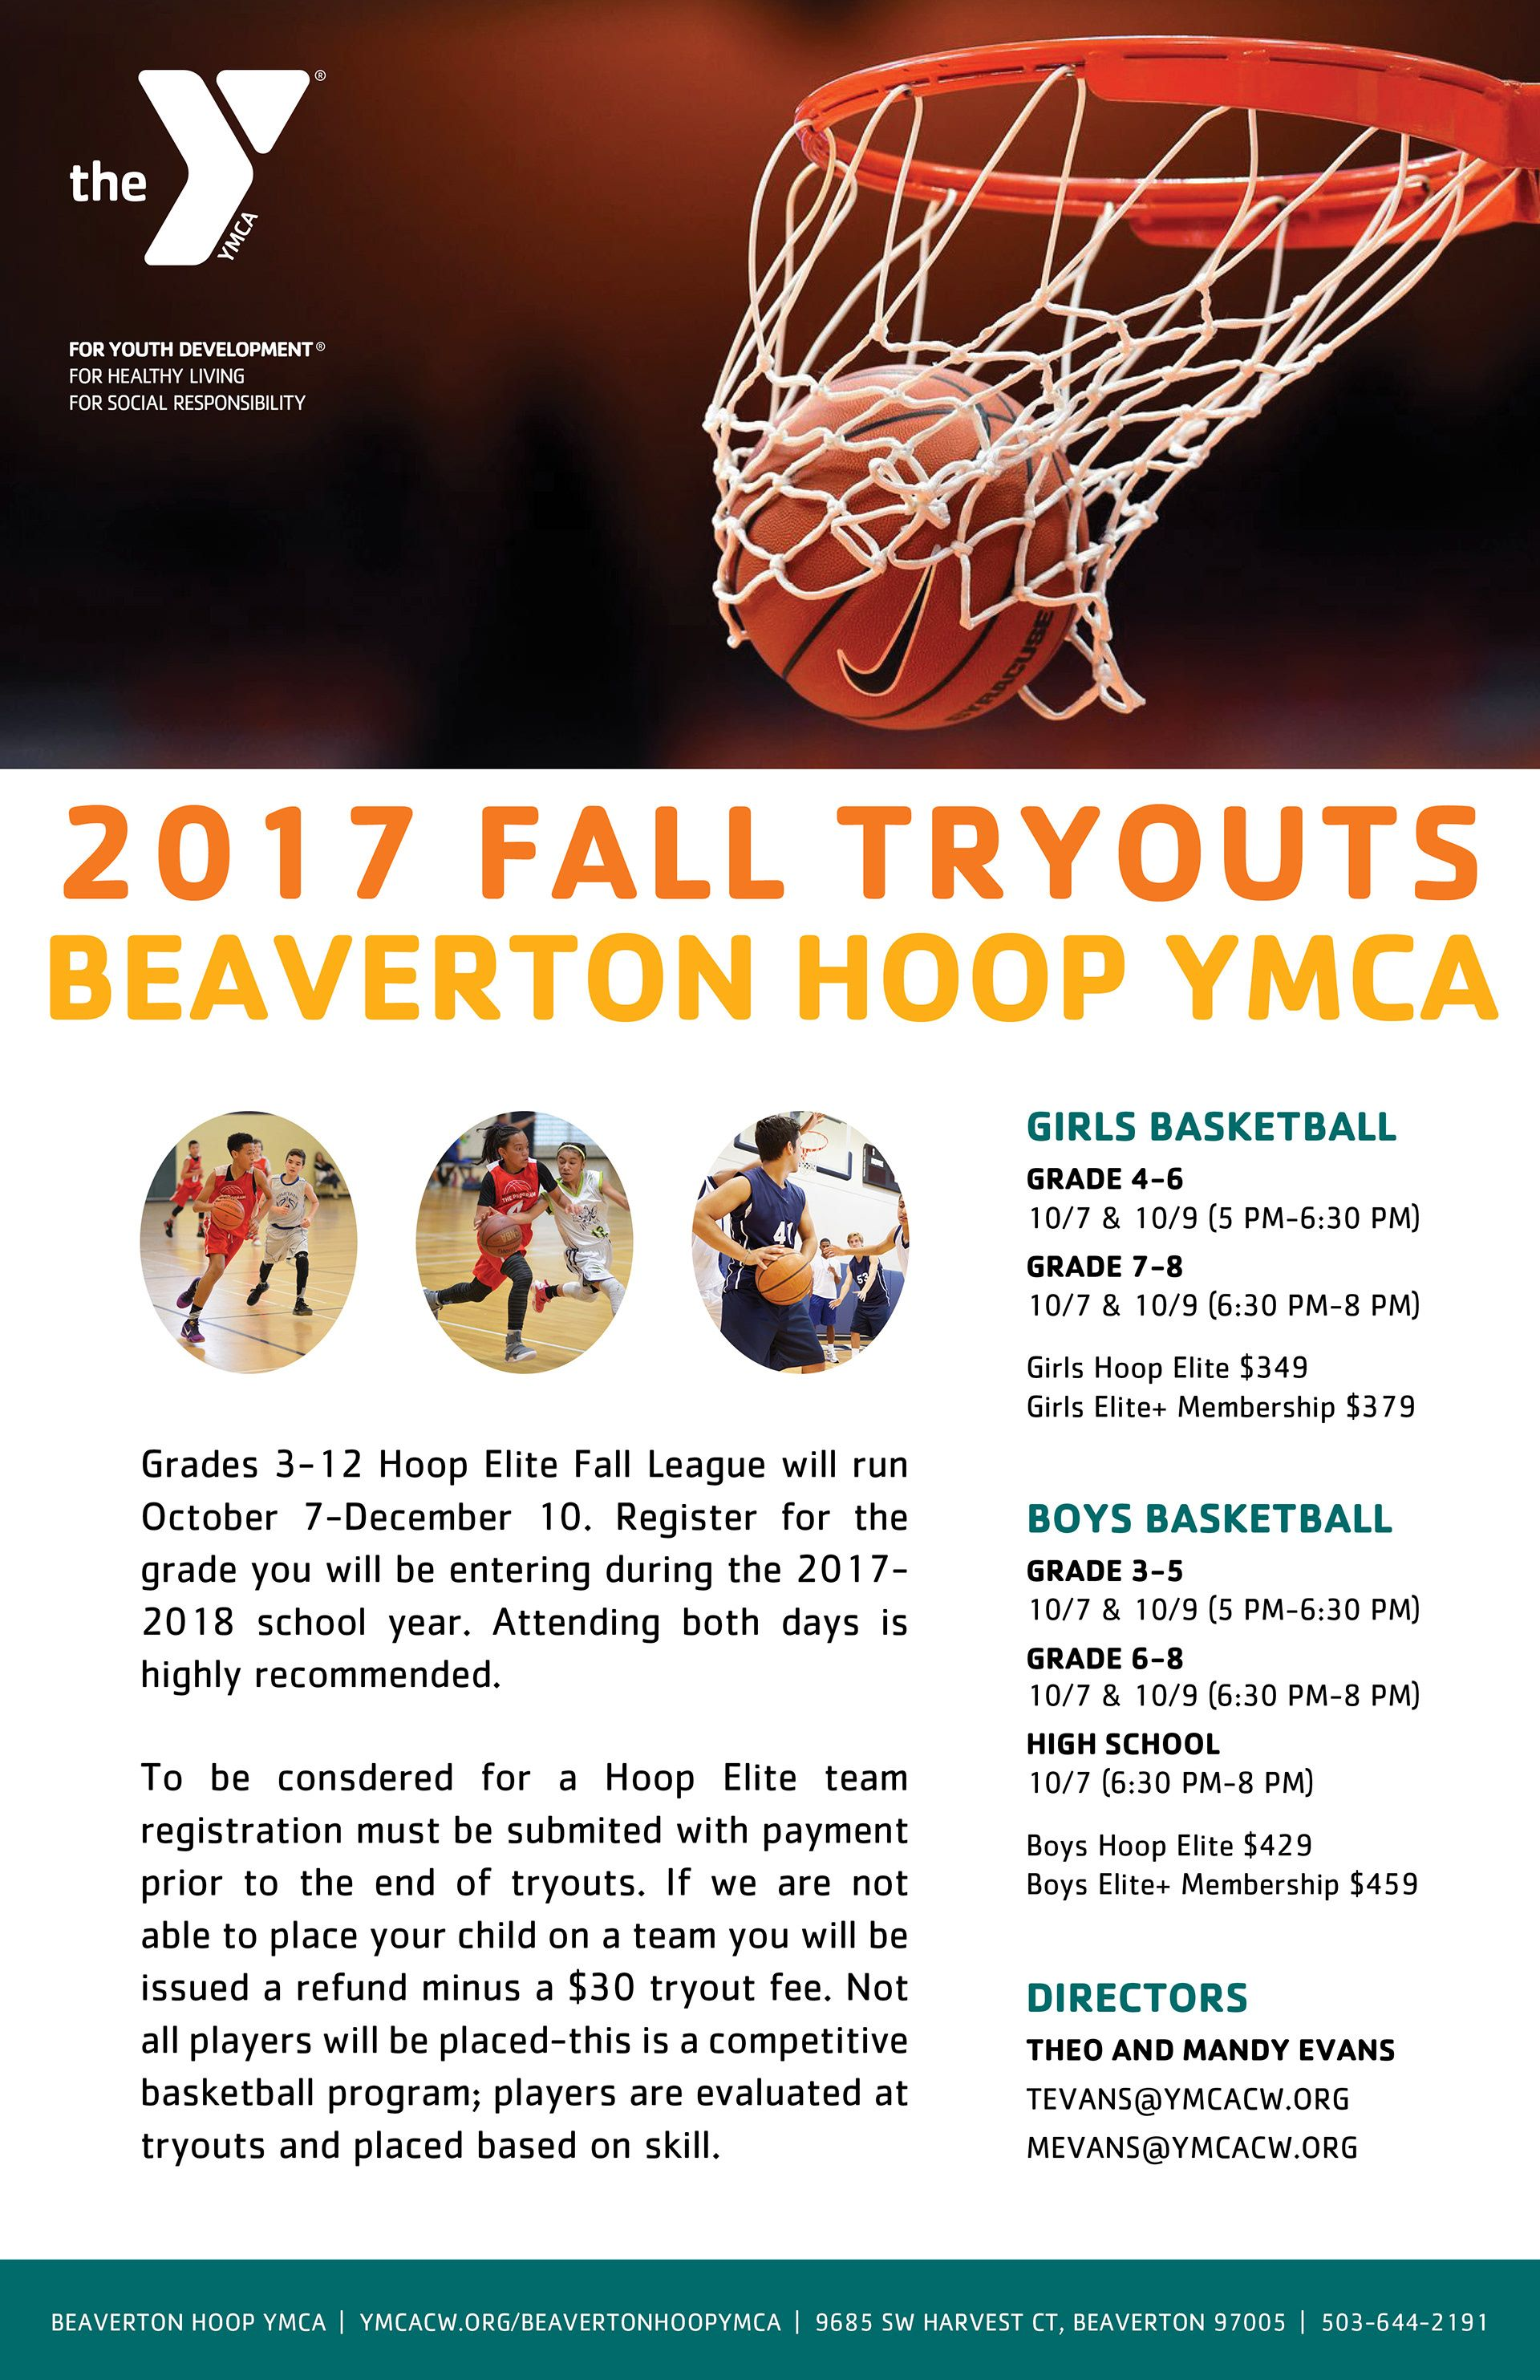 Concept layout ymca basketball poster for tryouts ymca